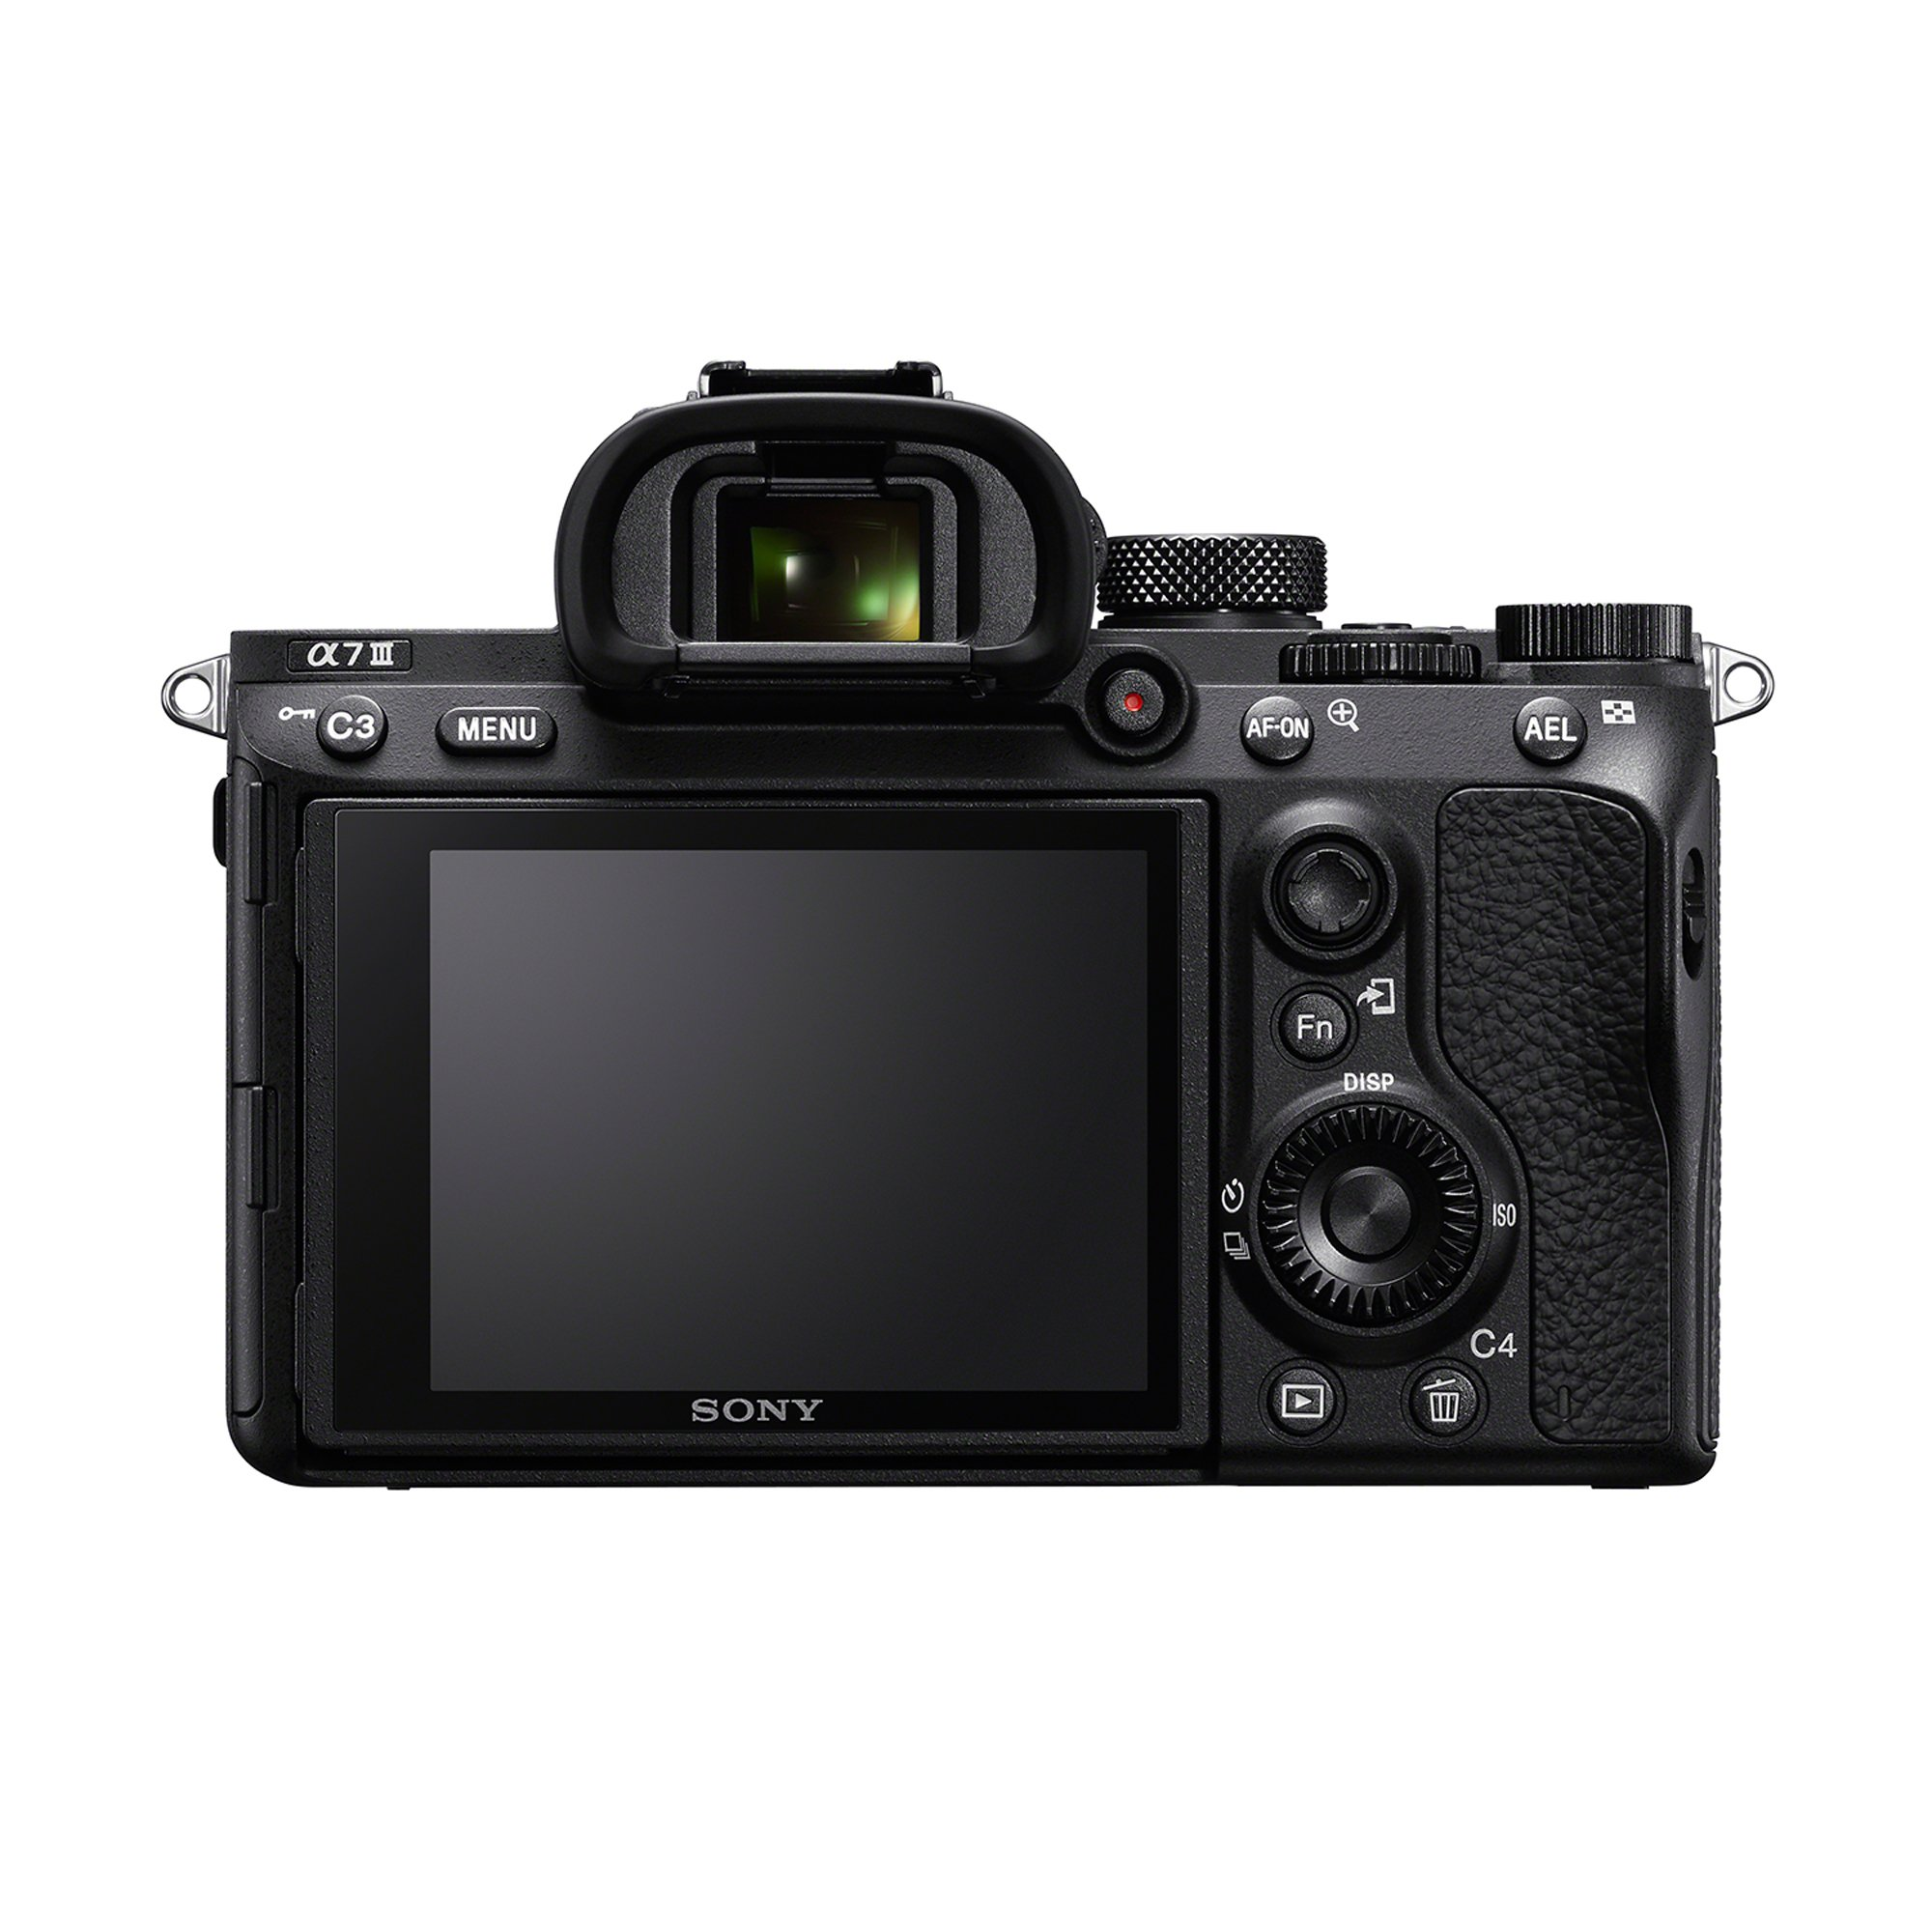 Sony a7 III ILCE7M3/B Full-Frame Mirrorless Interchangeable-Lens Camera with 3-Inch LCD, Body Only,Base Configuration,Black  Sony a7 III Full Frame Mirrorless Camera with 28-70mm, FE 50mm f/1.8 Lens, 64GB Card, and Accessory Bundle (9 Items)  Sony a7 III Full-Frame Mirrorless Interchangeable-Lens Camera Optical with 3-Inch LCD, Black (ILCE7M3/B) and FE 24-70mm f/2.8 GM Lens